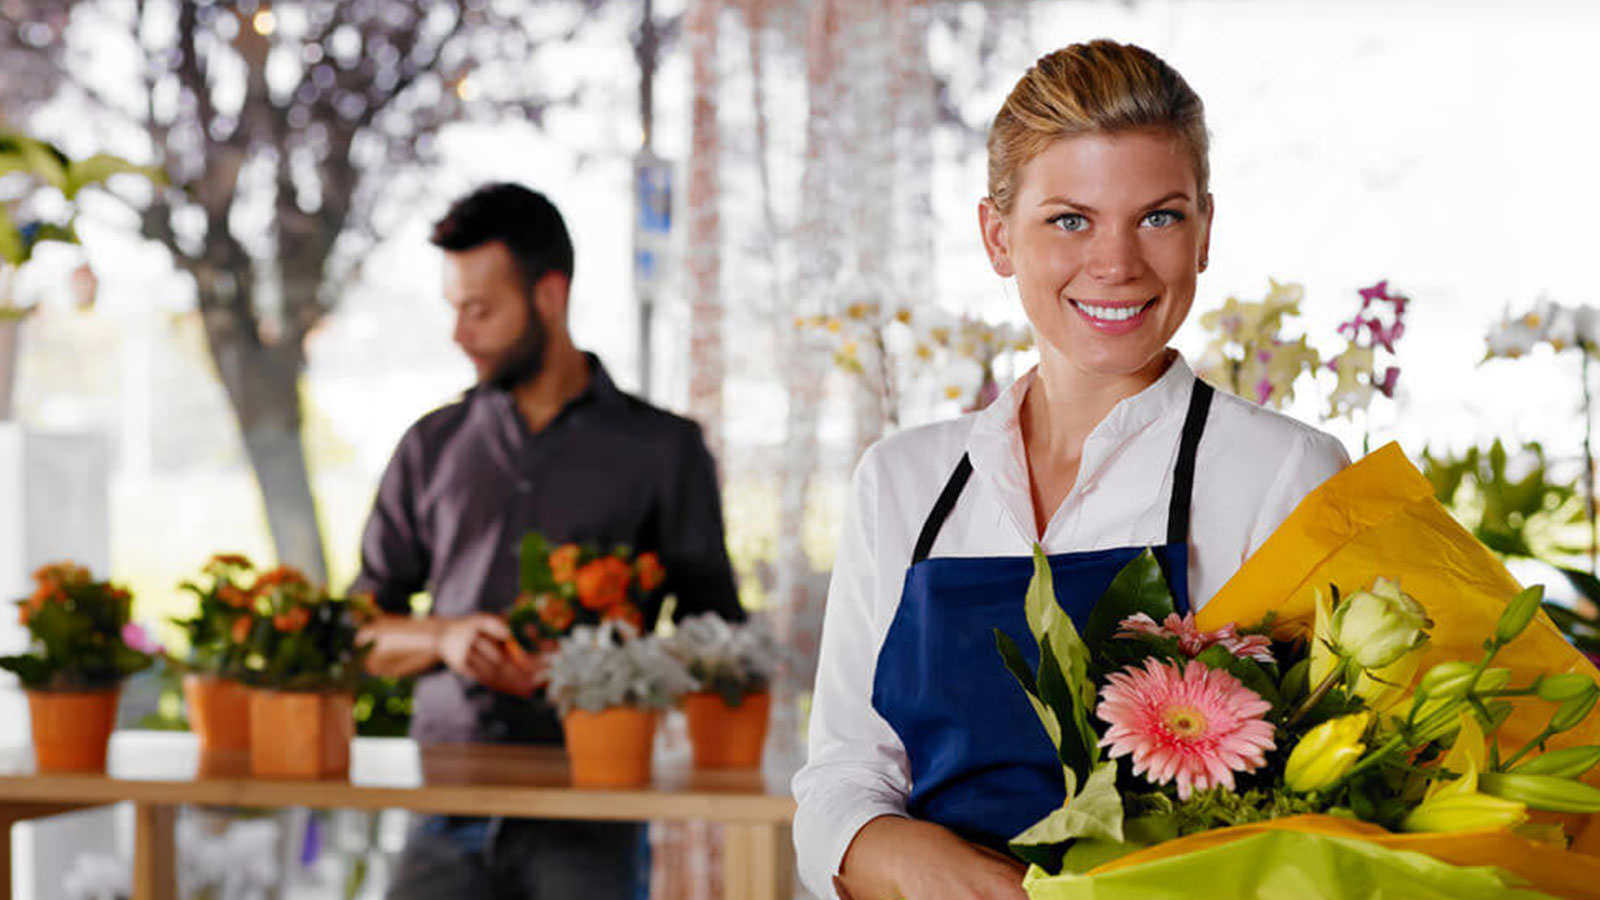 Customer referrals are key to small business success